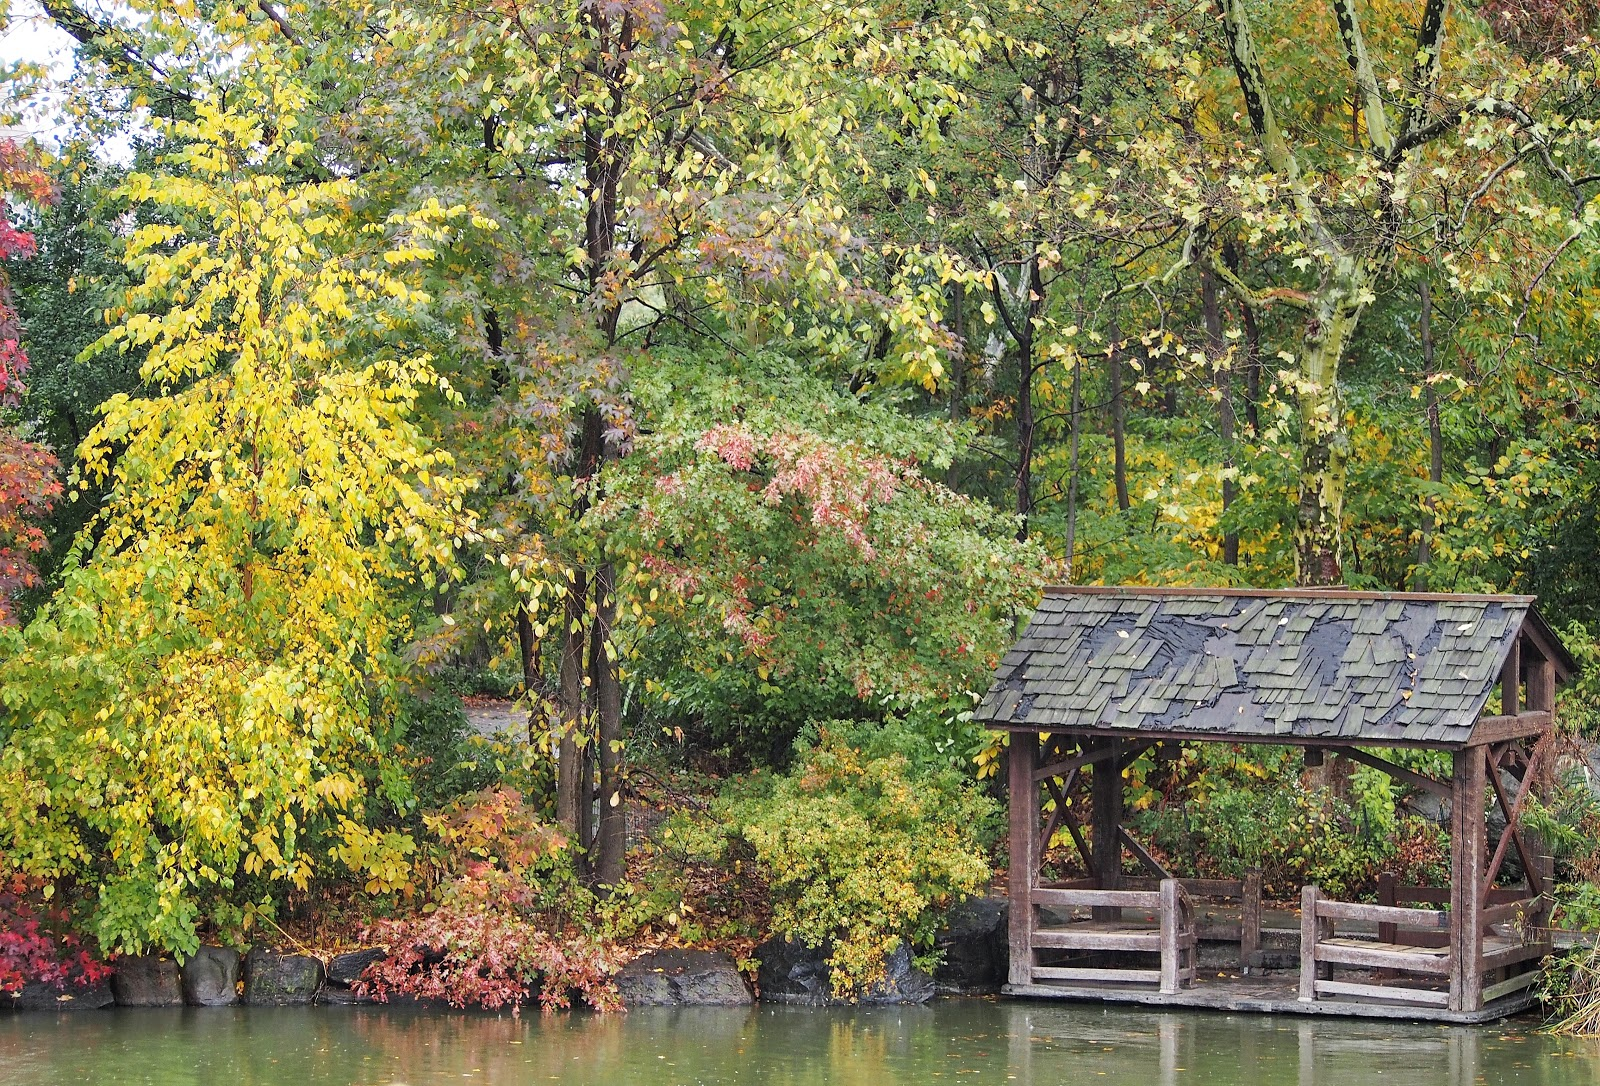 Boat House, #boathouse #fall #centralpark #nyc #fallincentralpark #fallinNYC 2014